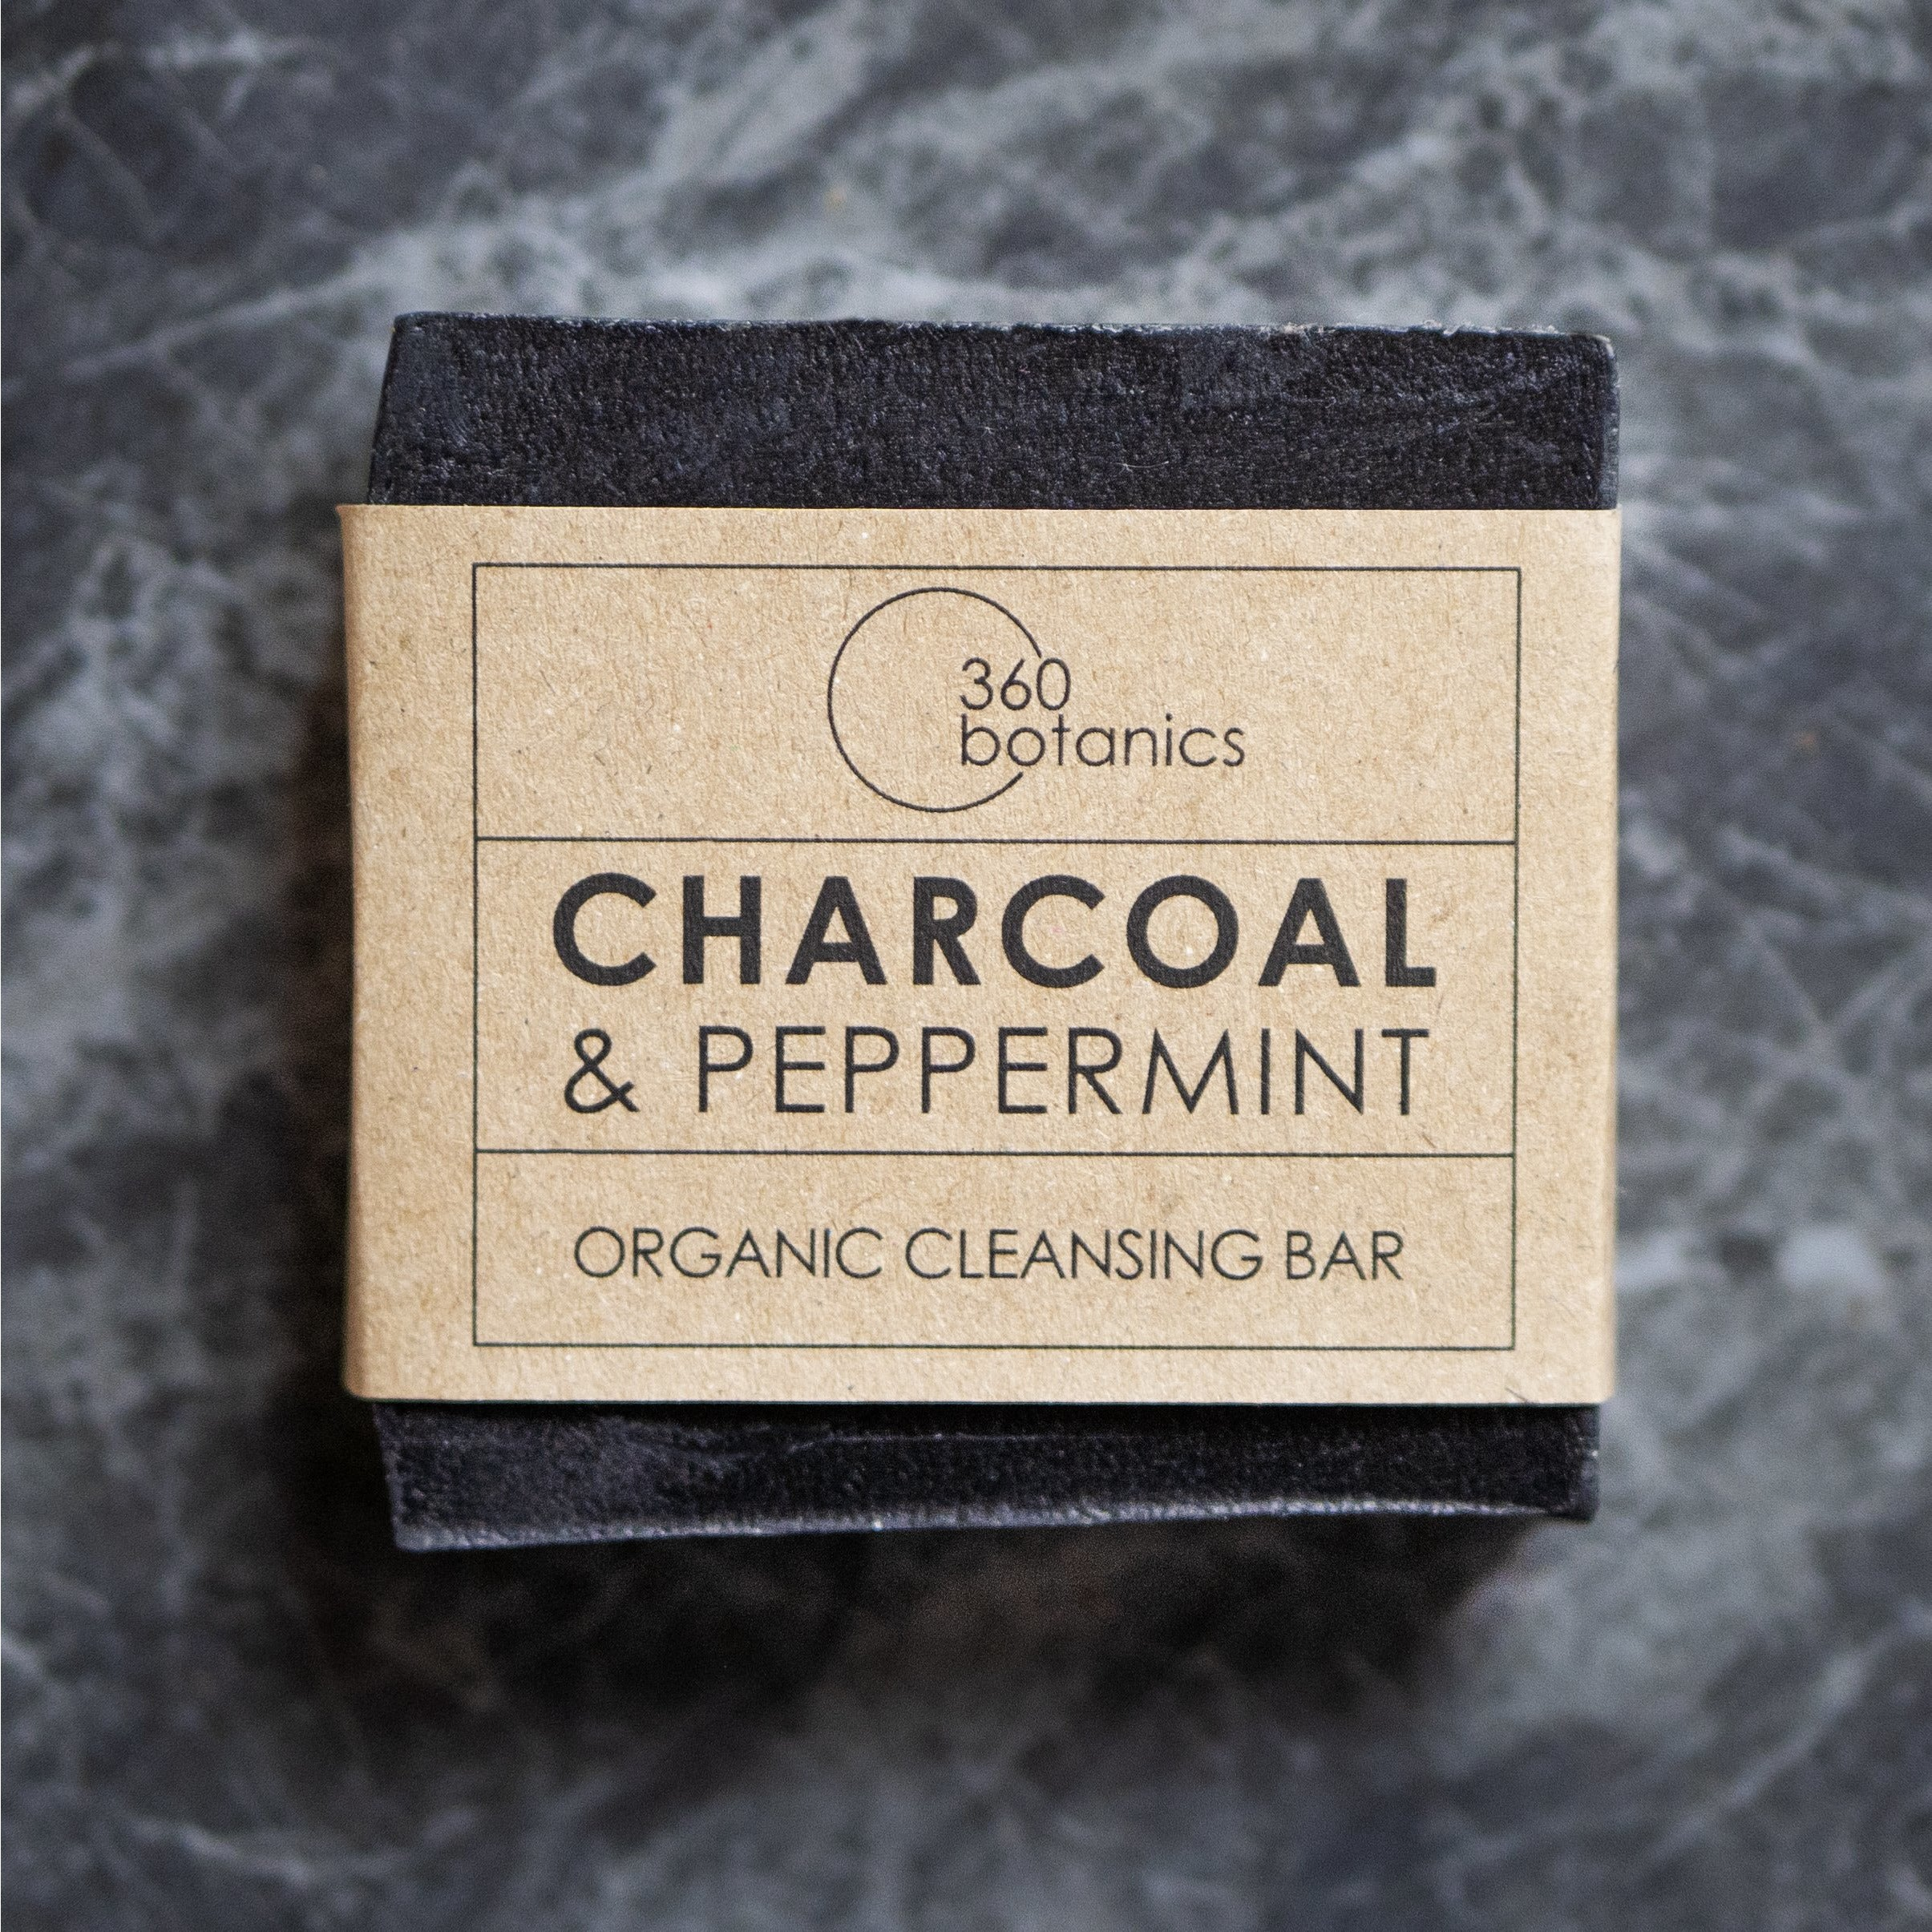 image of 360 botanics charcoal and Peppermint soap on dark background